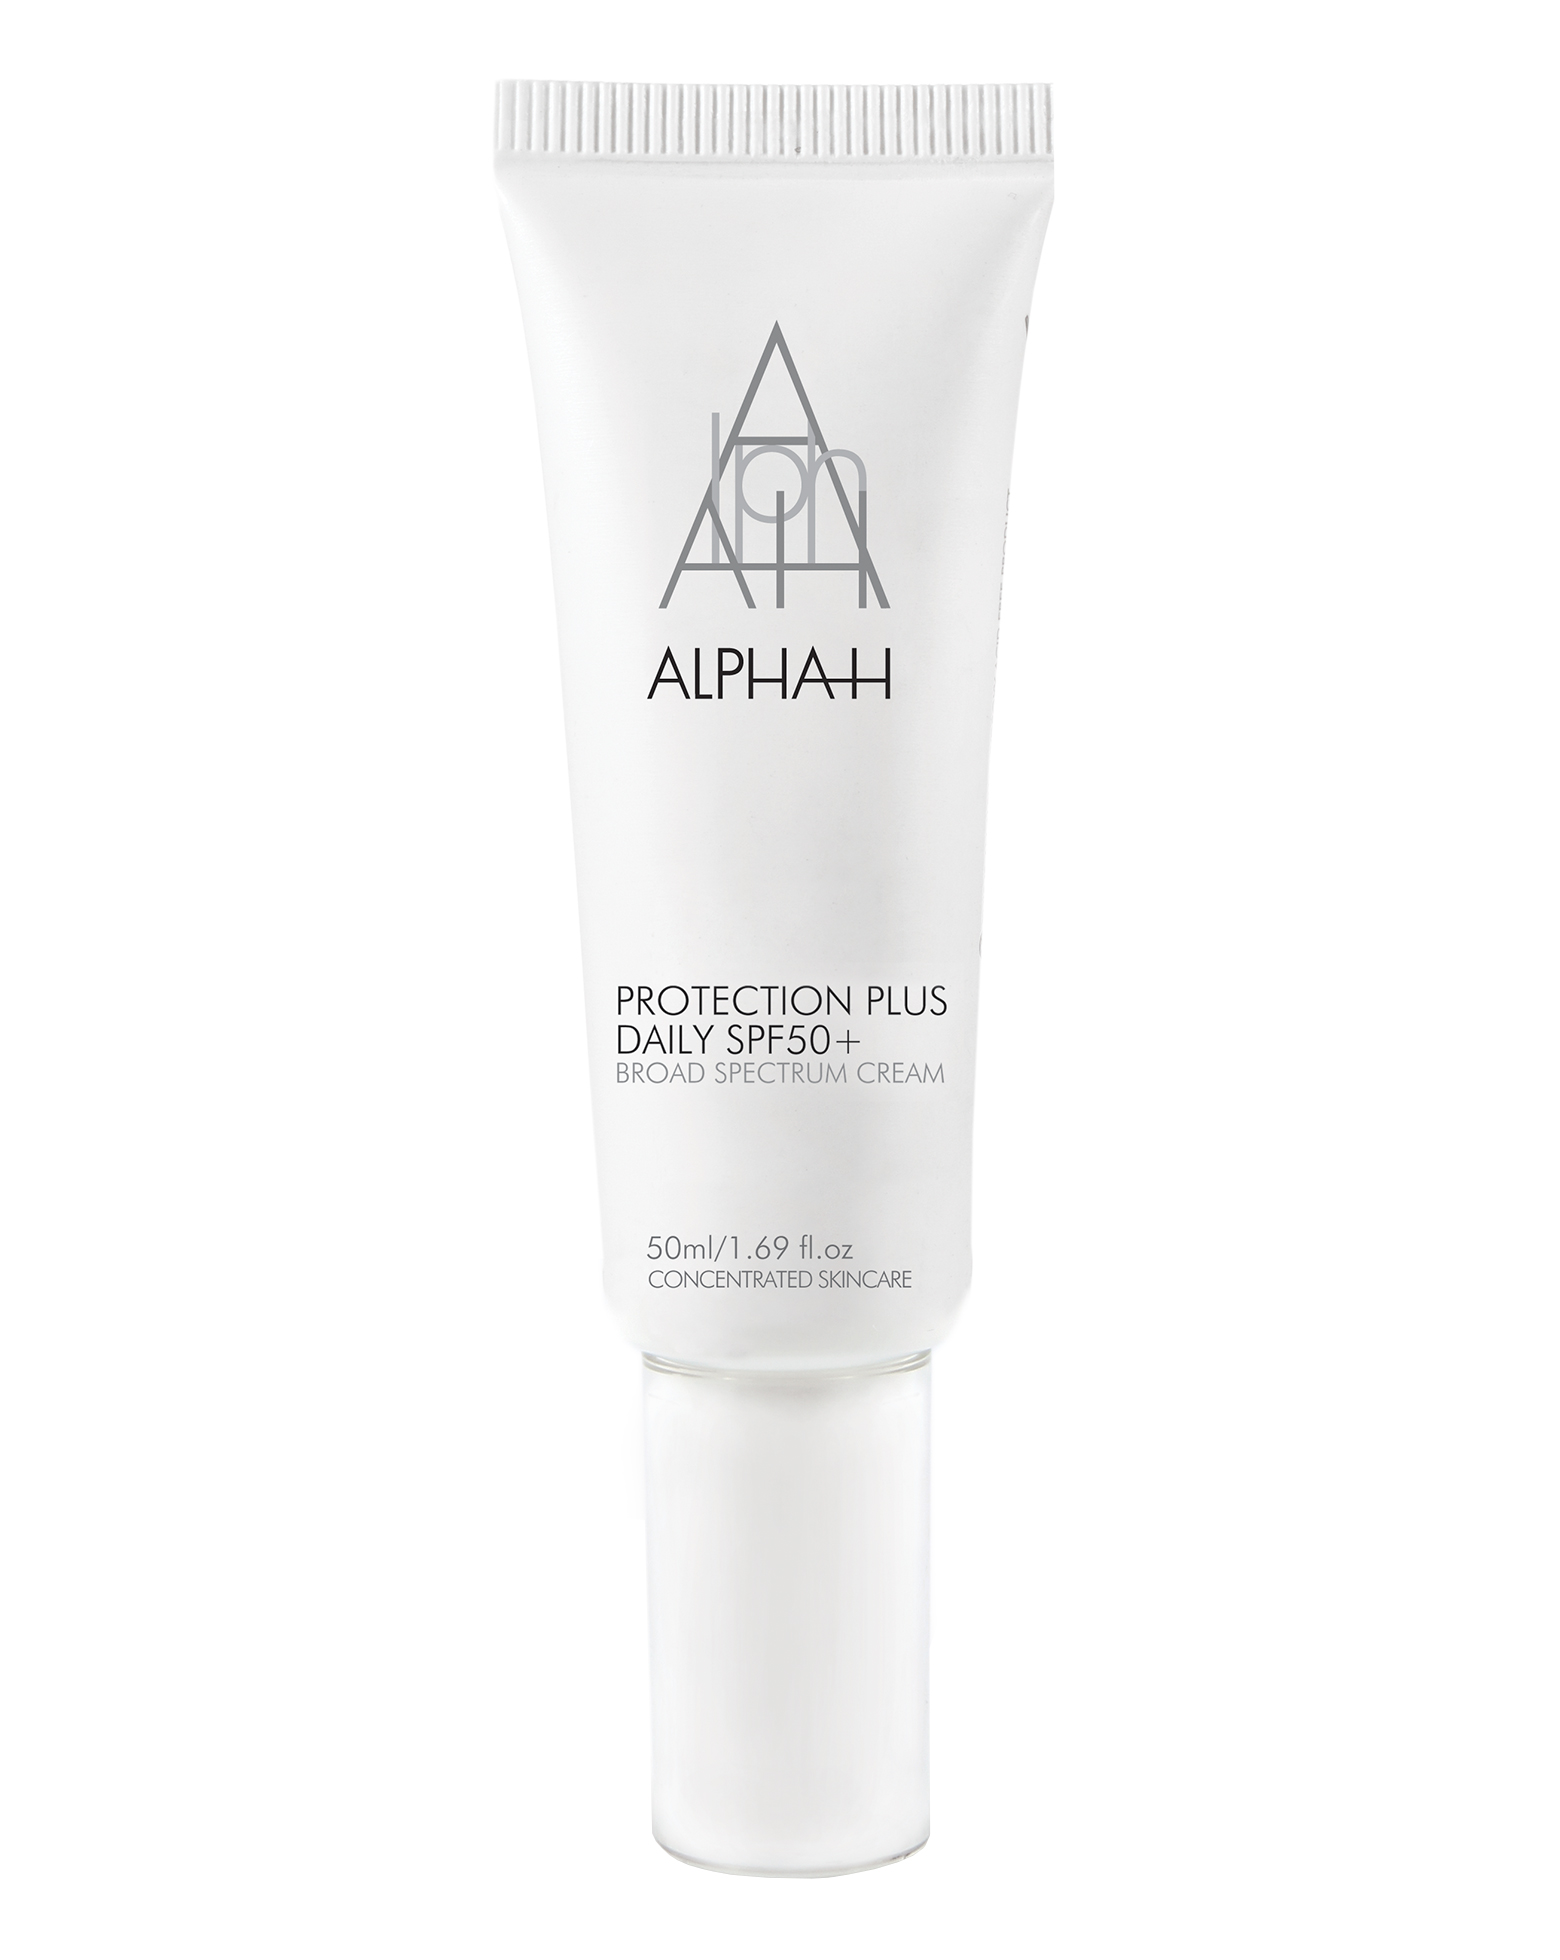 alpha H protection Plus moisturiser ideal festival makeup